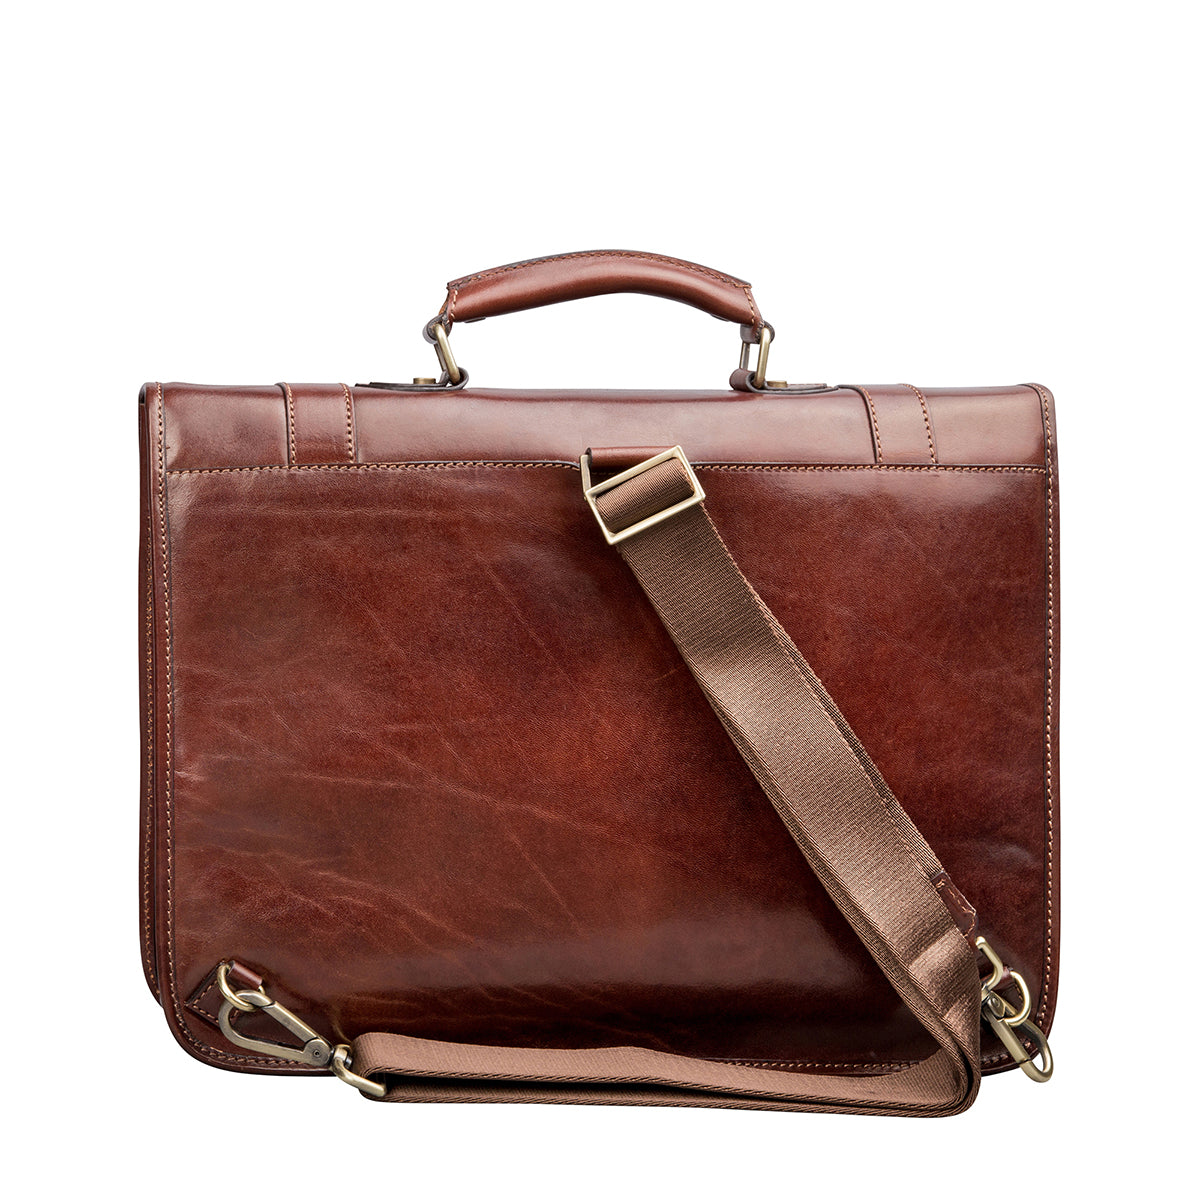 Image 4 of the 'Micheli' Chestnut Veg-Tanned Leather Backpack Briefcase